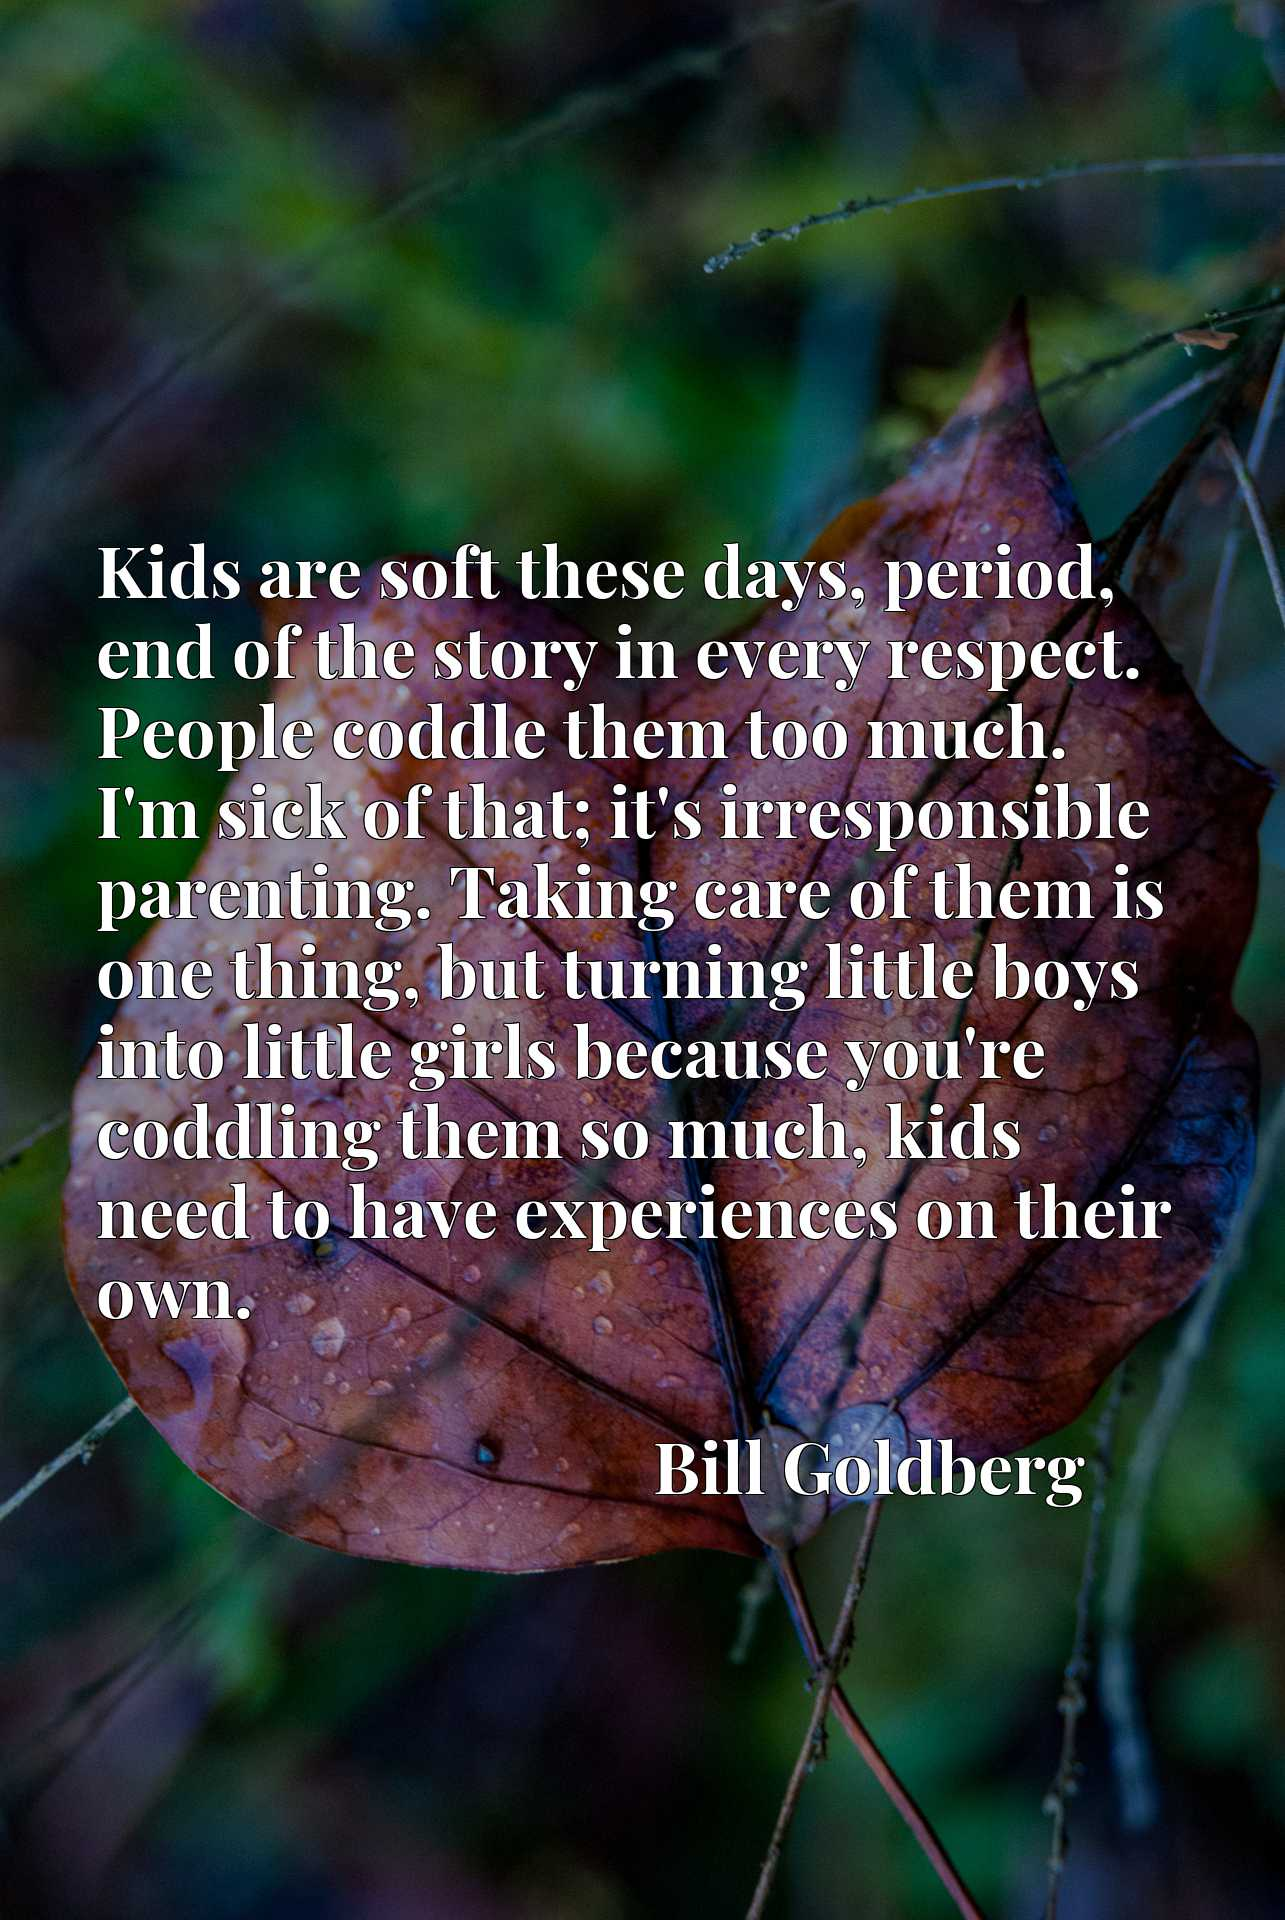 Kids are soft these days, period, end of the story in every respect. People coddle them too much. I'm sick of that; it's irresponsible parenting. Taking care of them is one thing, but turning little boys into little girls because you're coddling them so much, kids need to have experiences on their own.